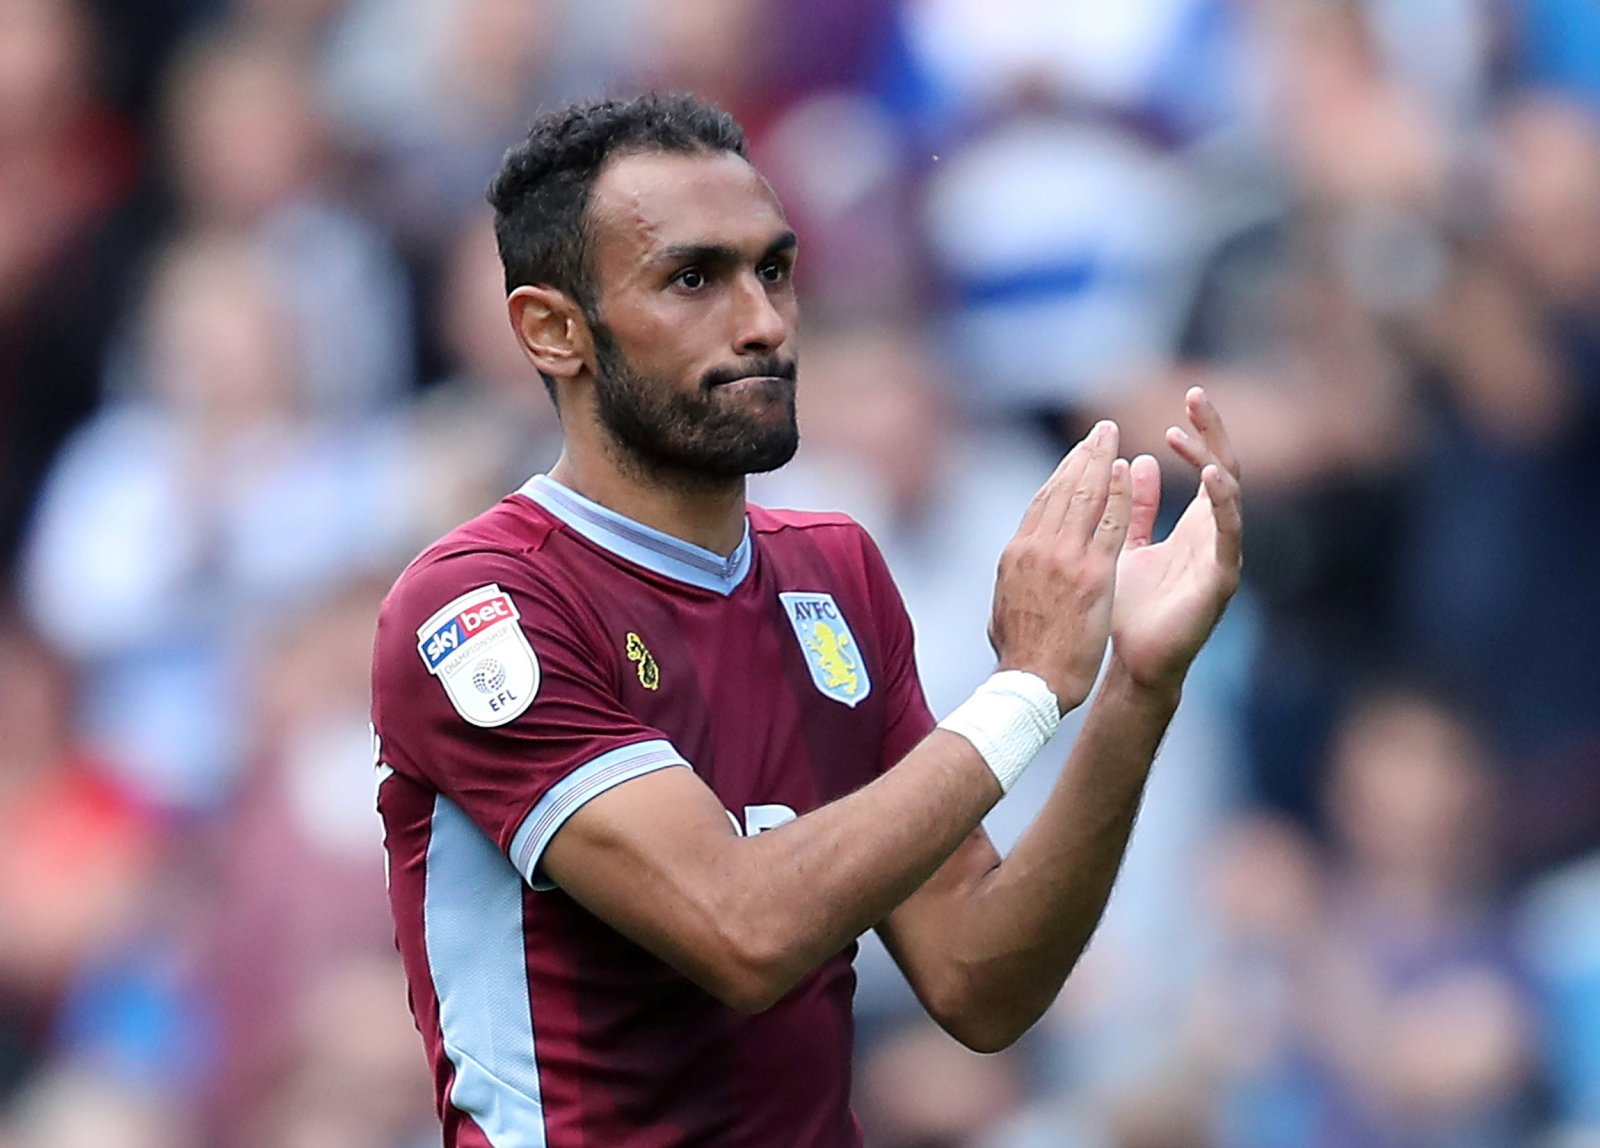 Elmohamady receives high praise from Aston Villa fans for his creative efforts